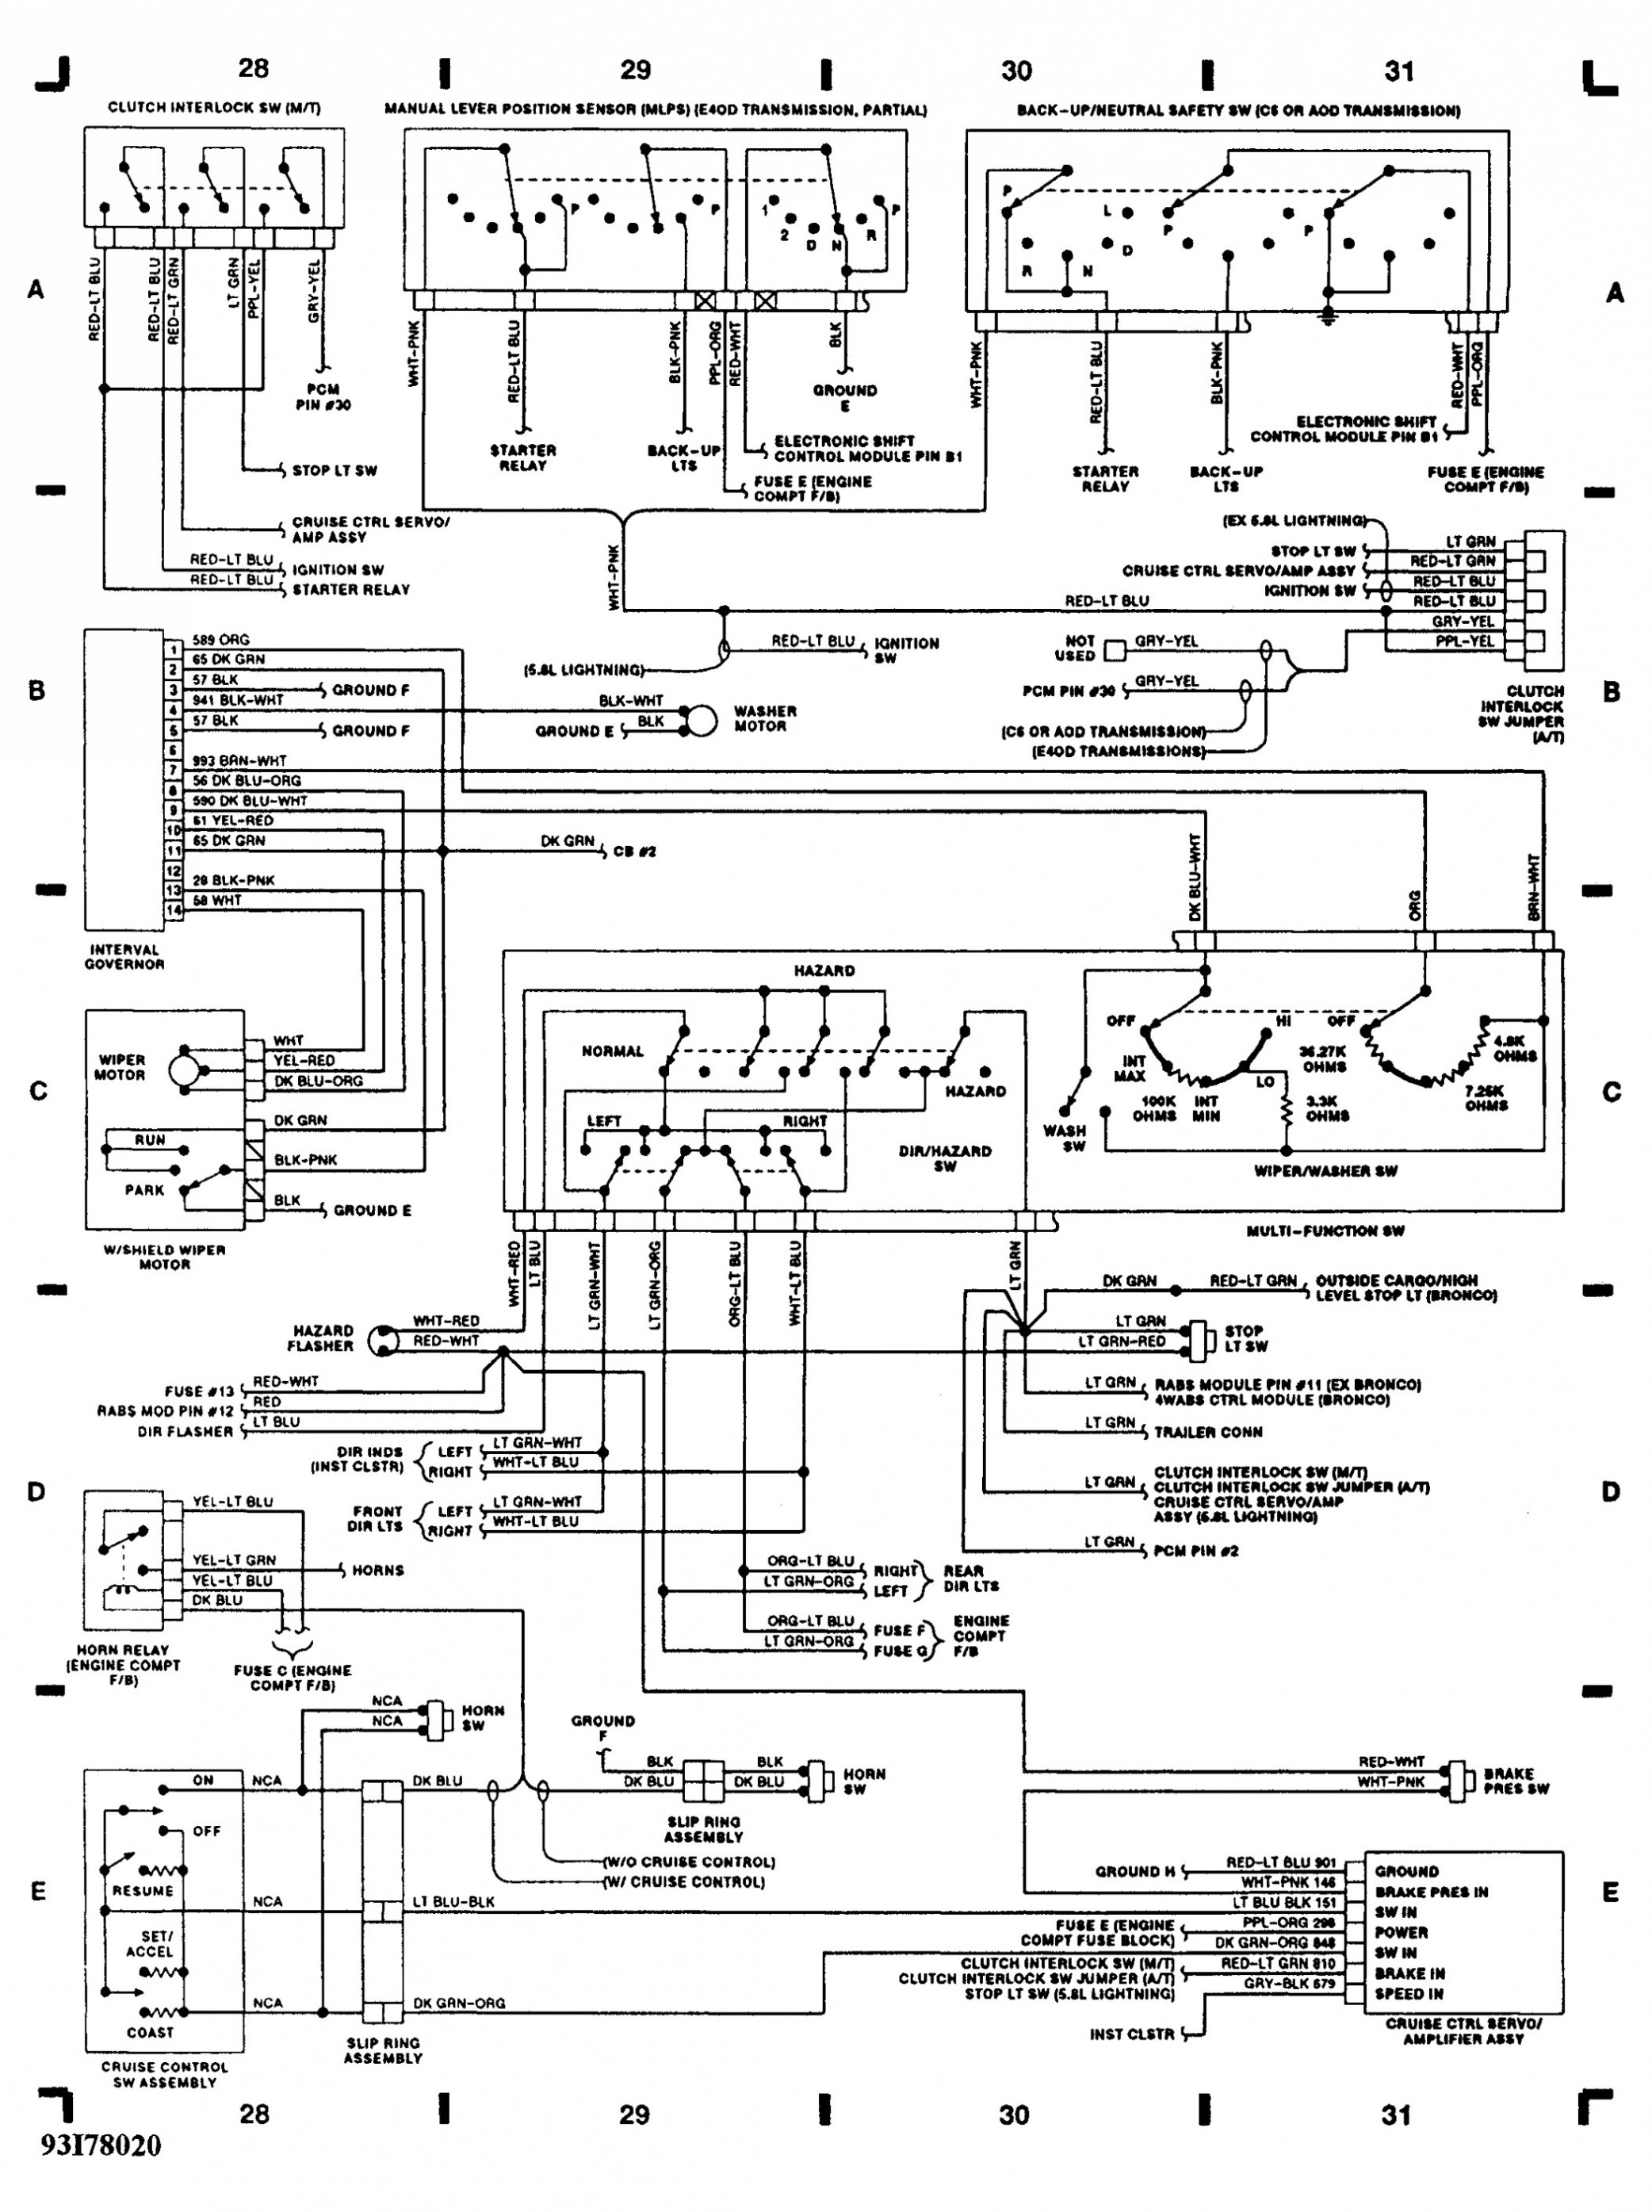 2003 ford F150 Engine Diagram 03 F150 Fuse Panel Diagram Trusted Wiring Diagram  Of 2003 ford